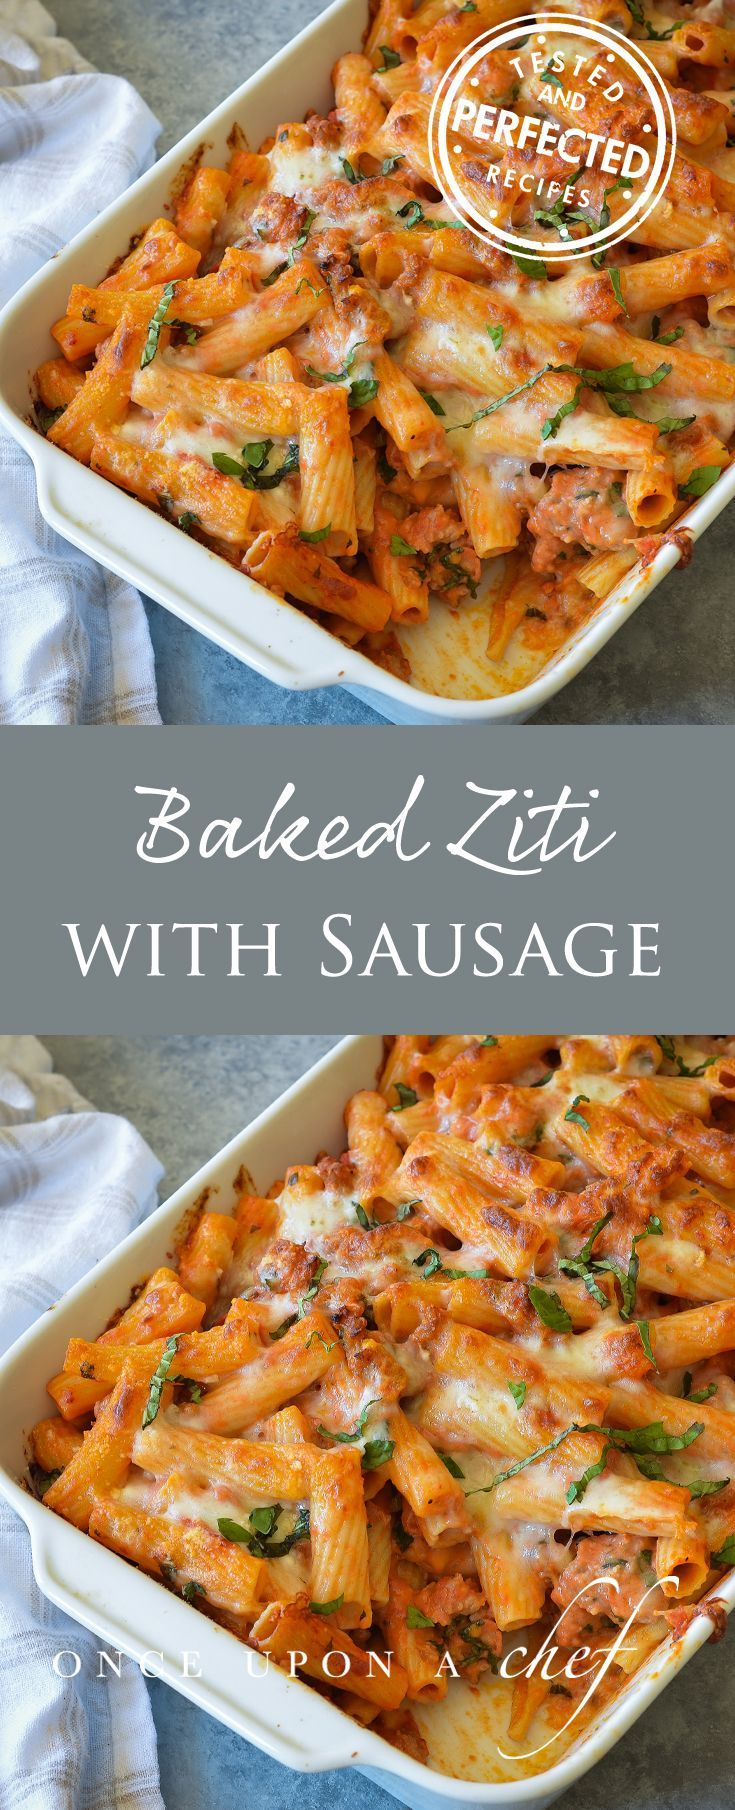 Italian Dishes:  Baked Ziti with Sausage by Once Upon a Chef.